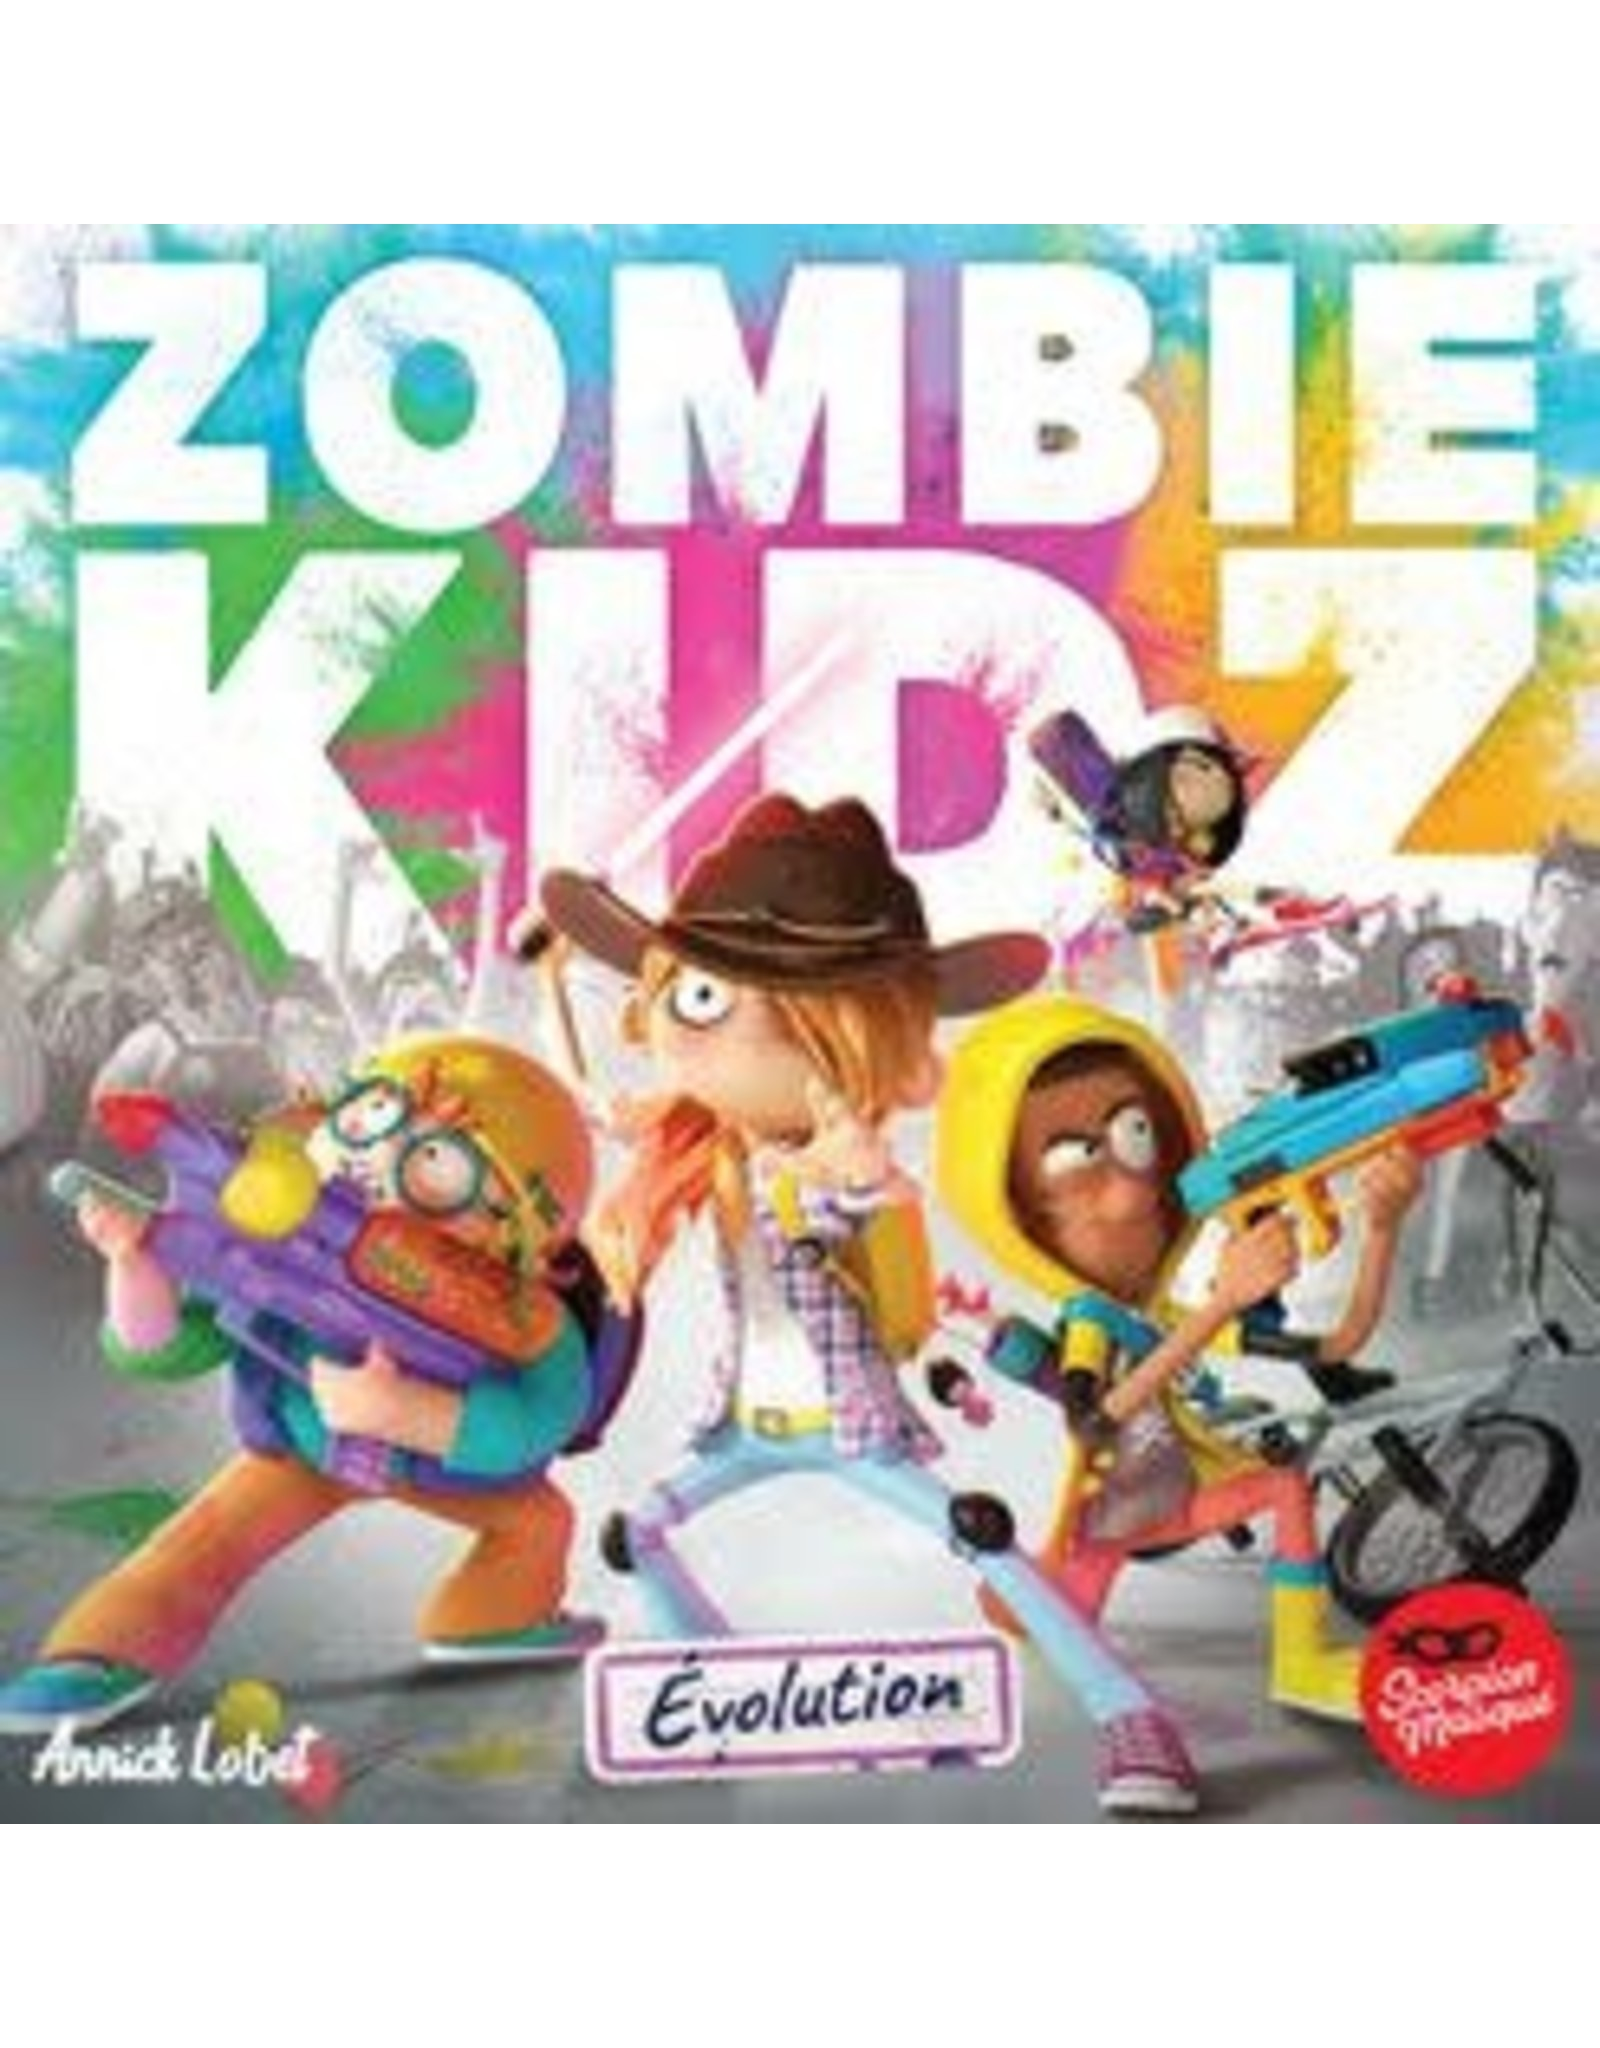 Scorpion Masque Zombie Kidz Evolution